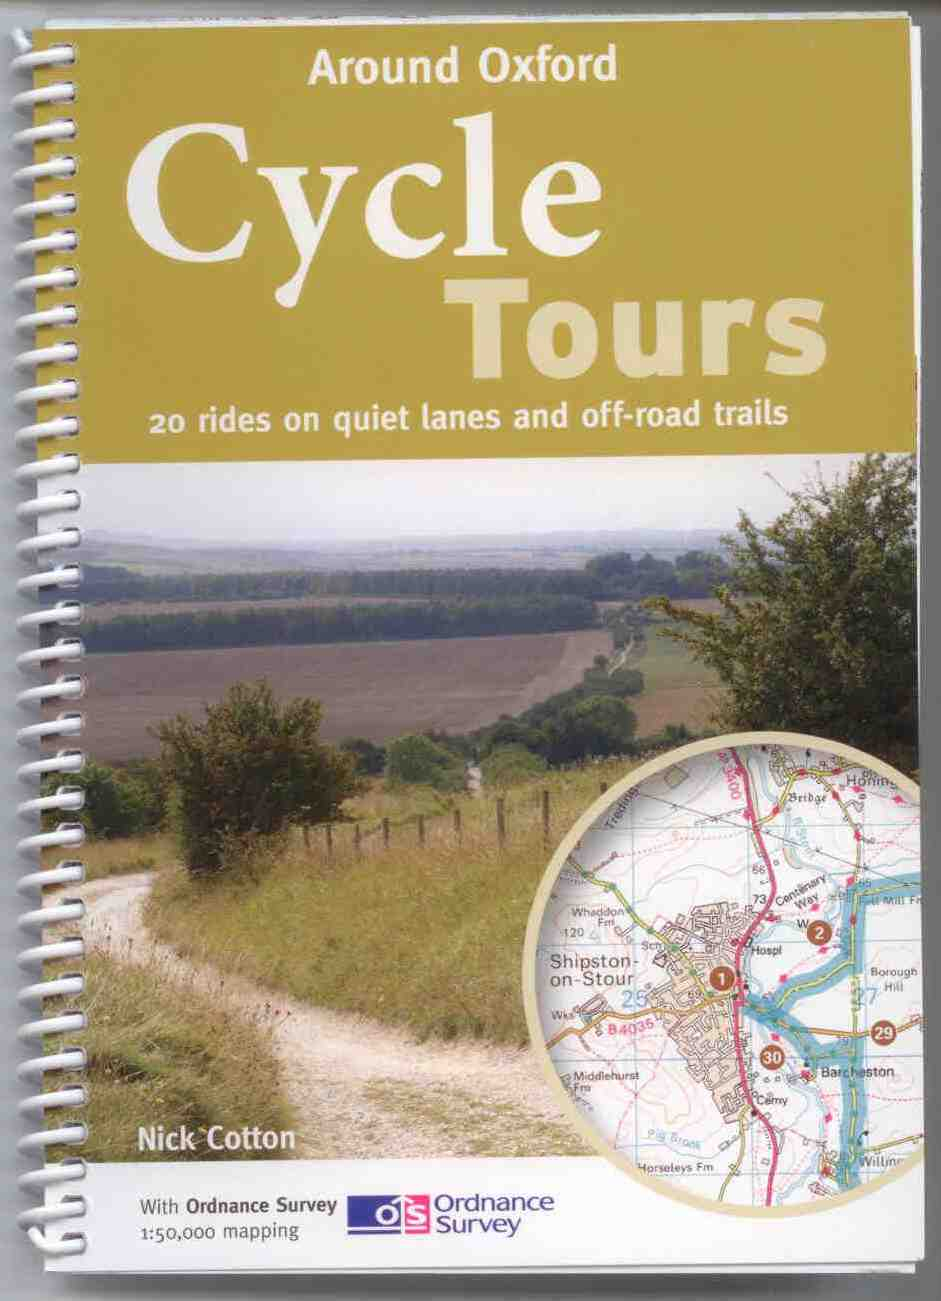 Oxfordshire cycle route maps and guide books